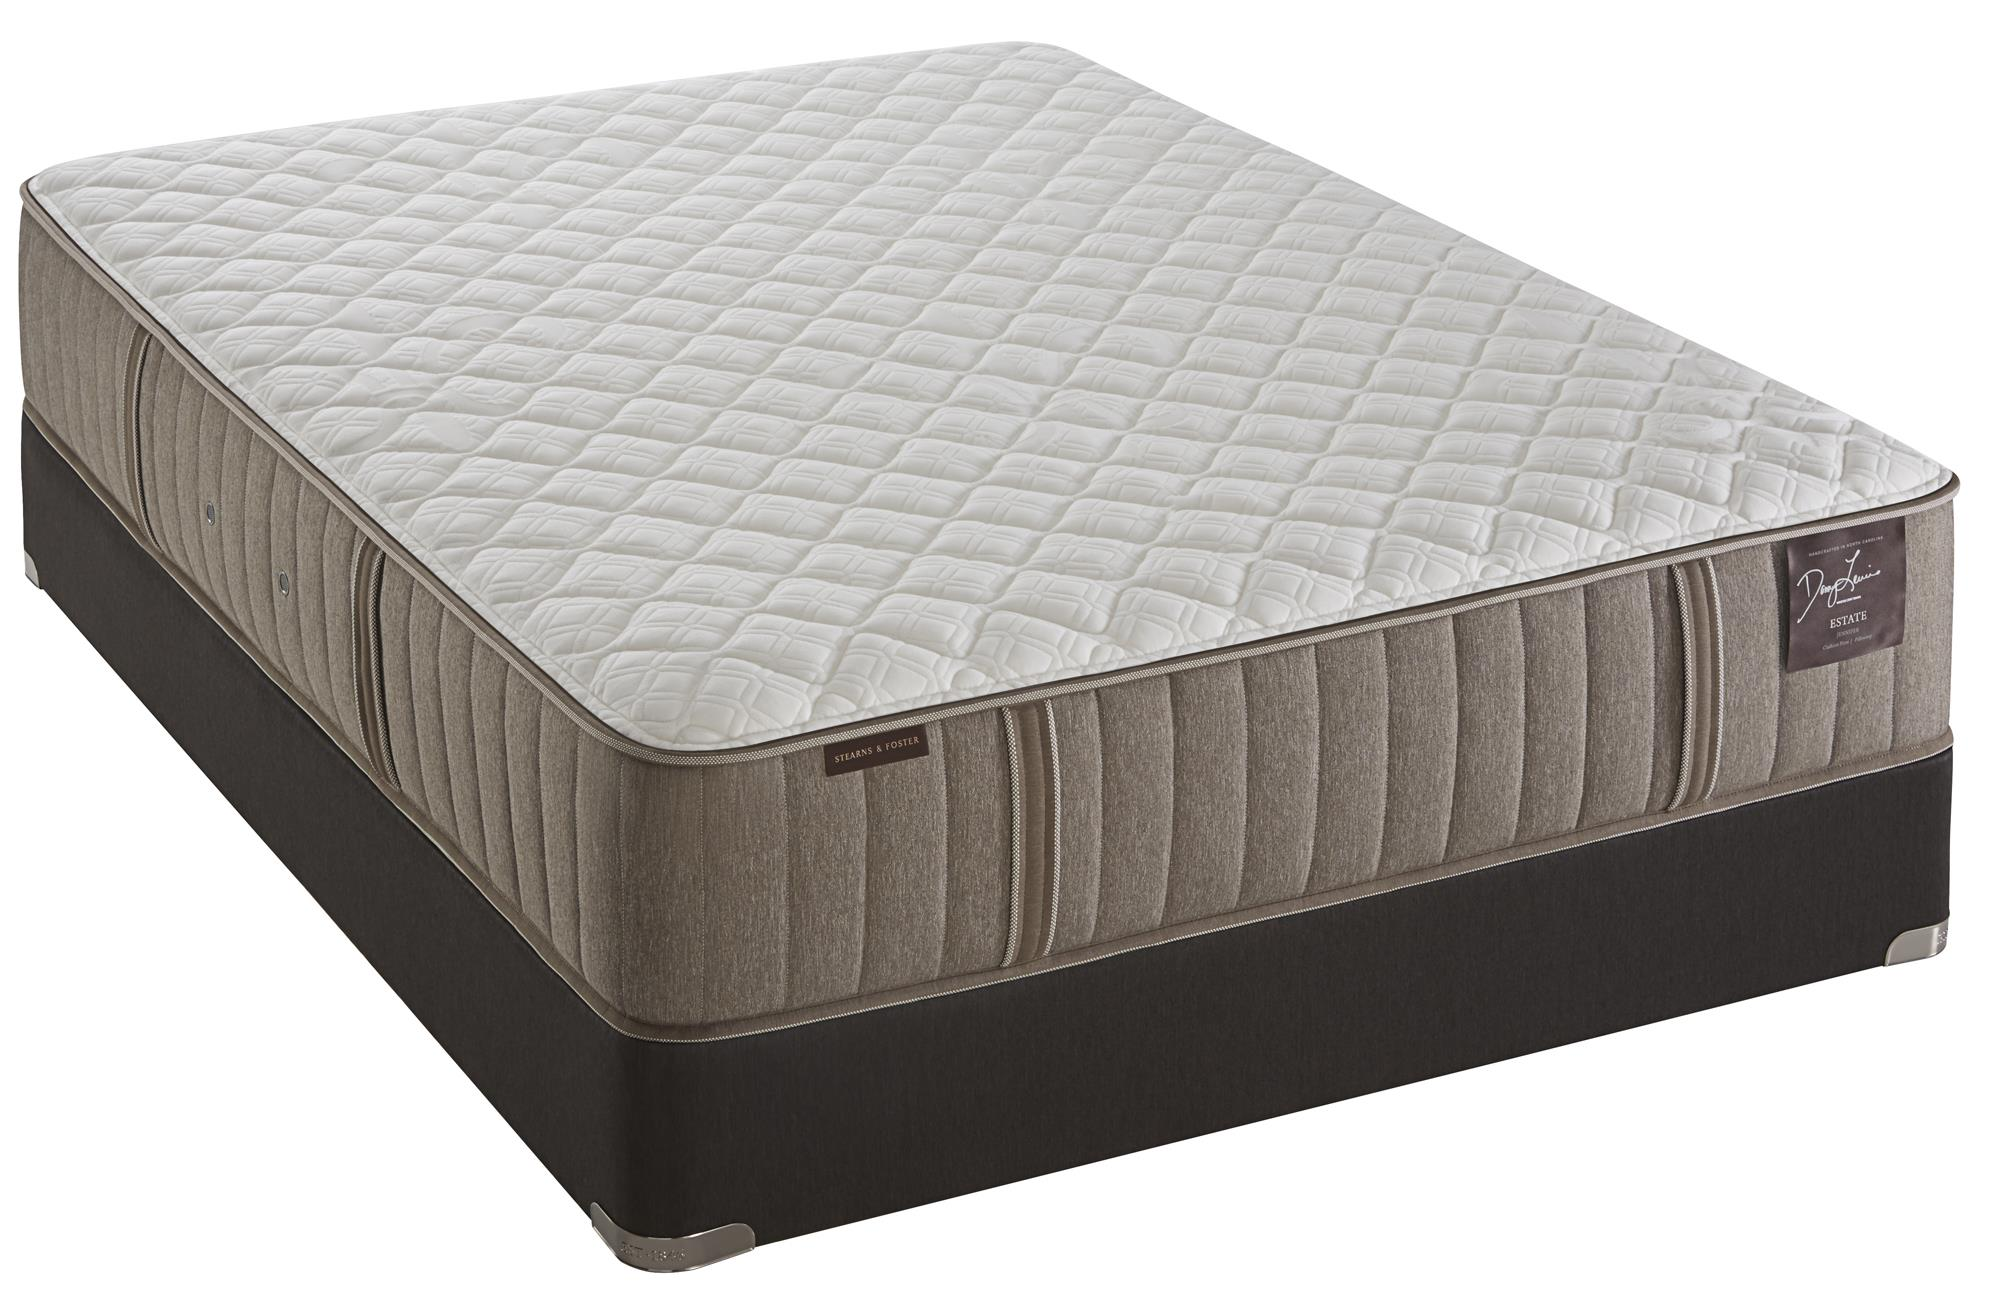 Stearns & Foster Scarborough Ultra Firm Twin XL Ultra Firm Mattress Set - Item Number: UFirm-TXL+LPFoundation-TXL